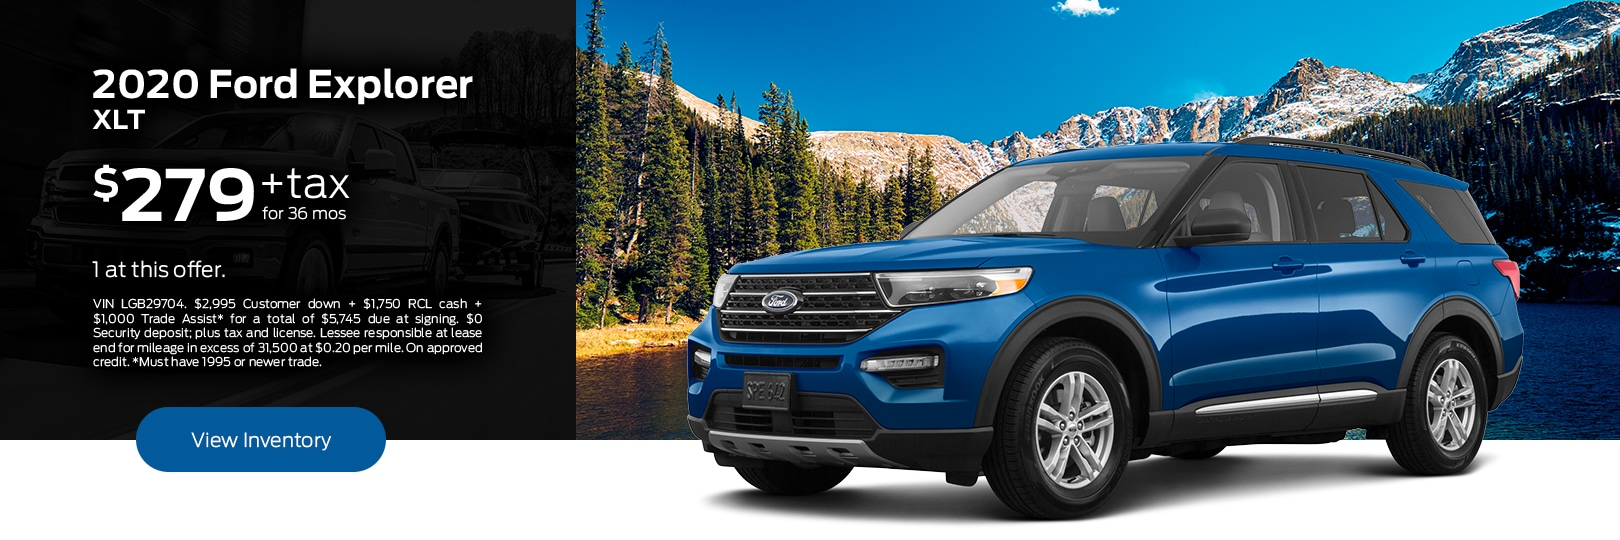 Slide - 2020 Ford Explorer XLT.jpg